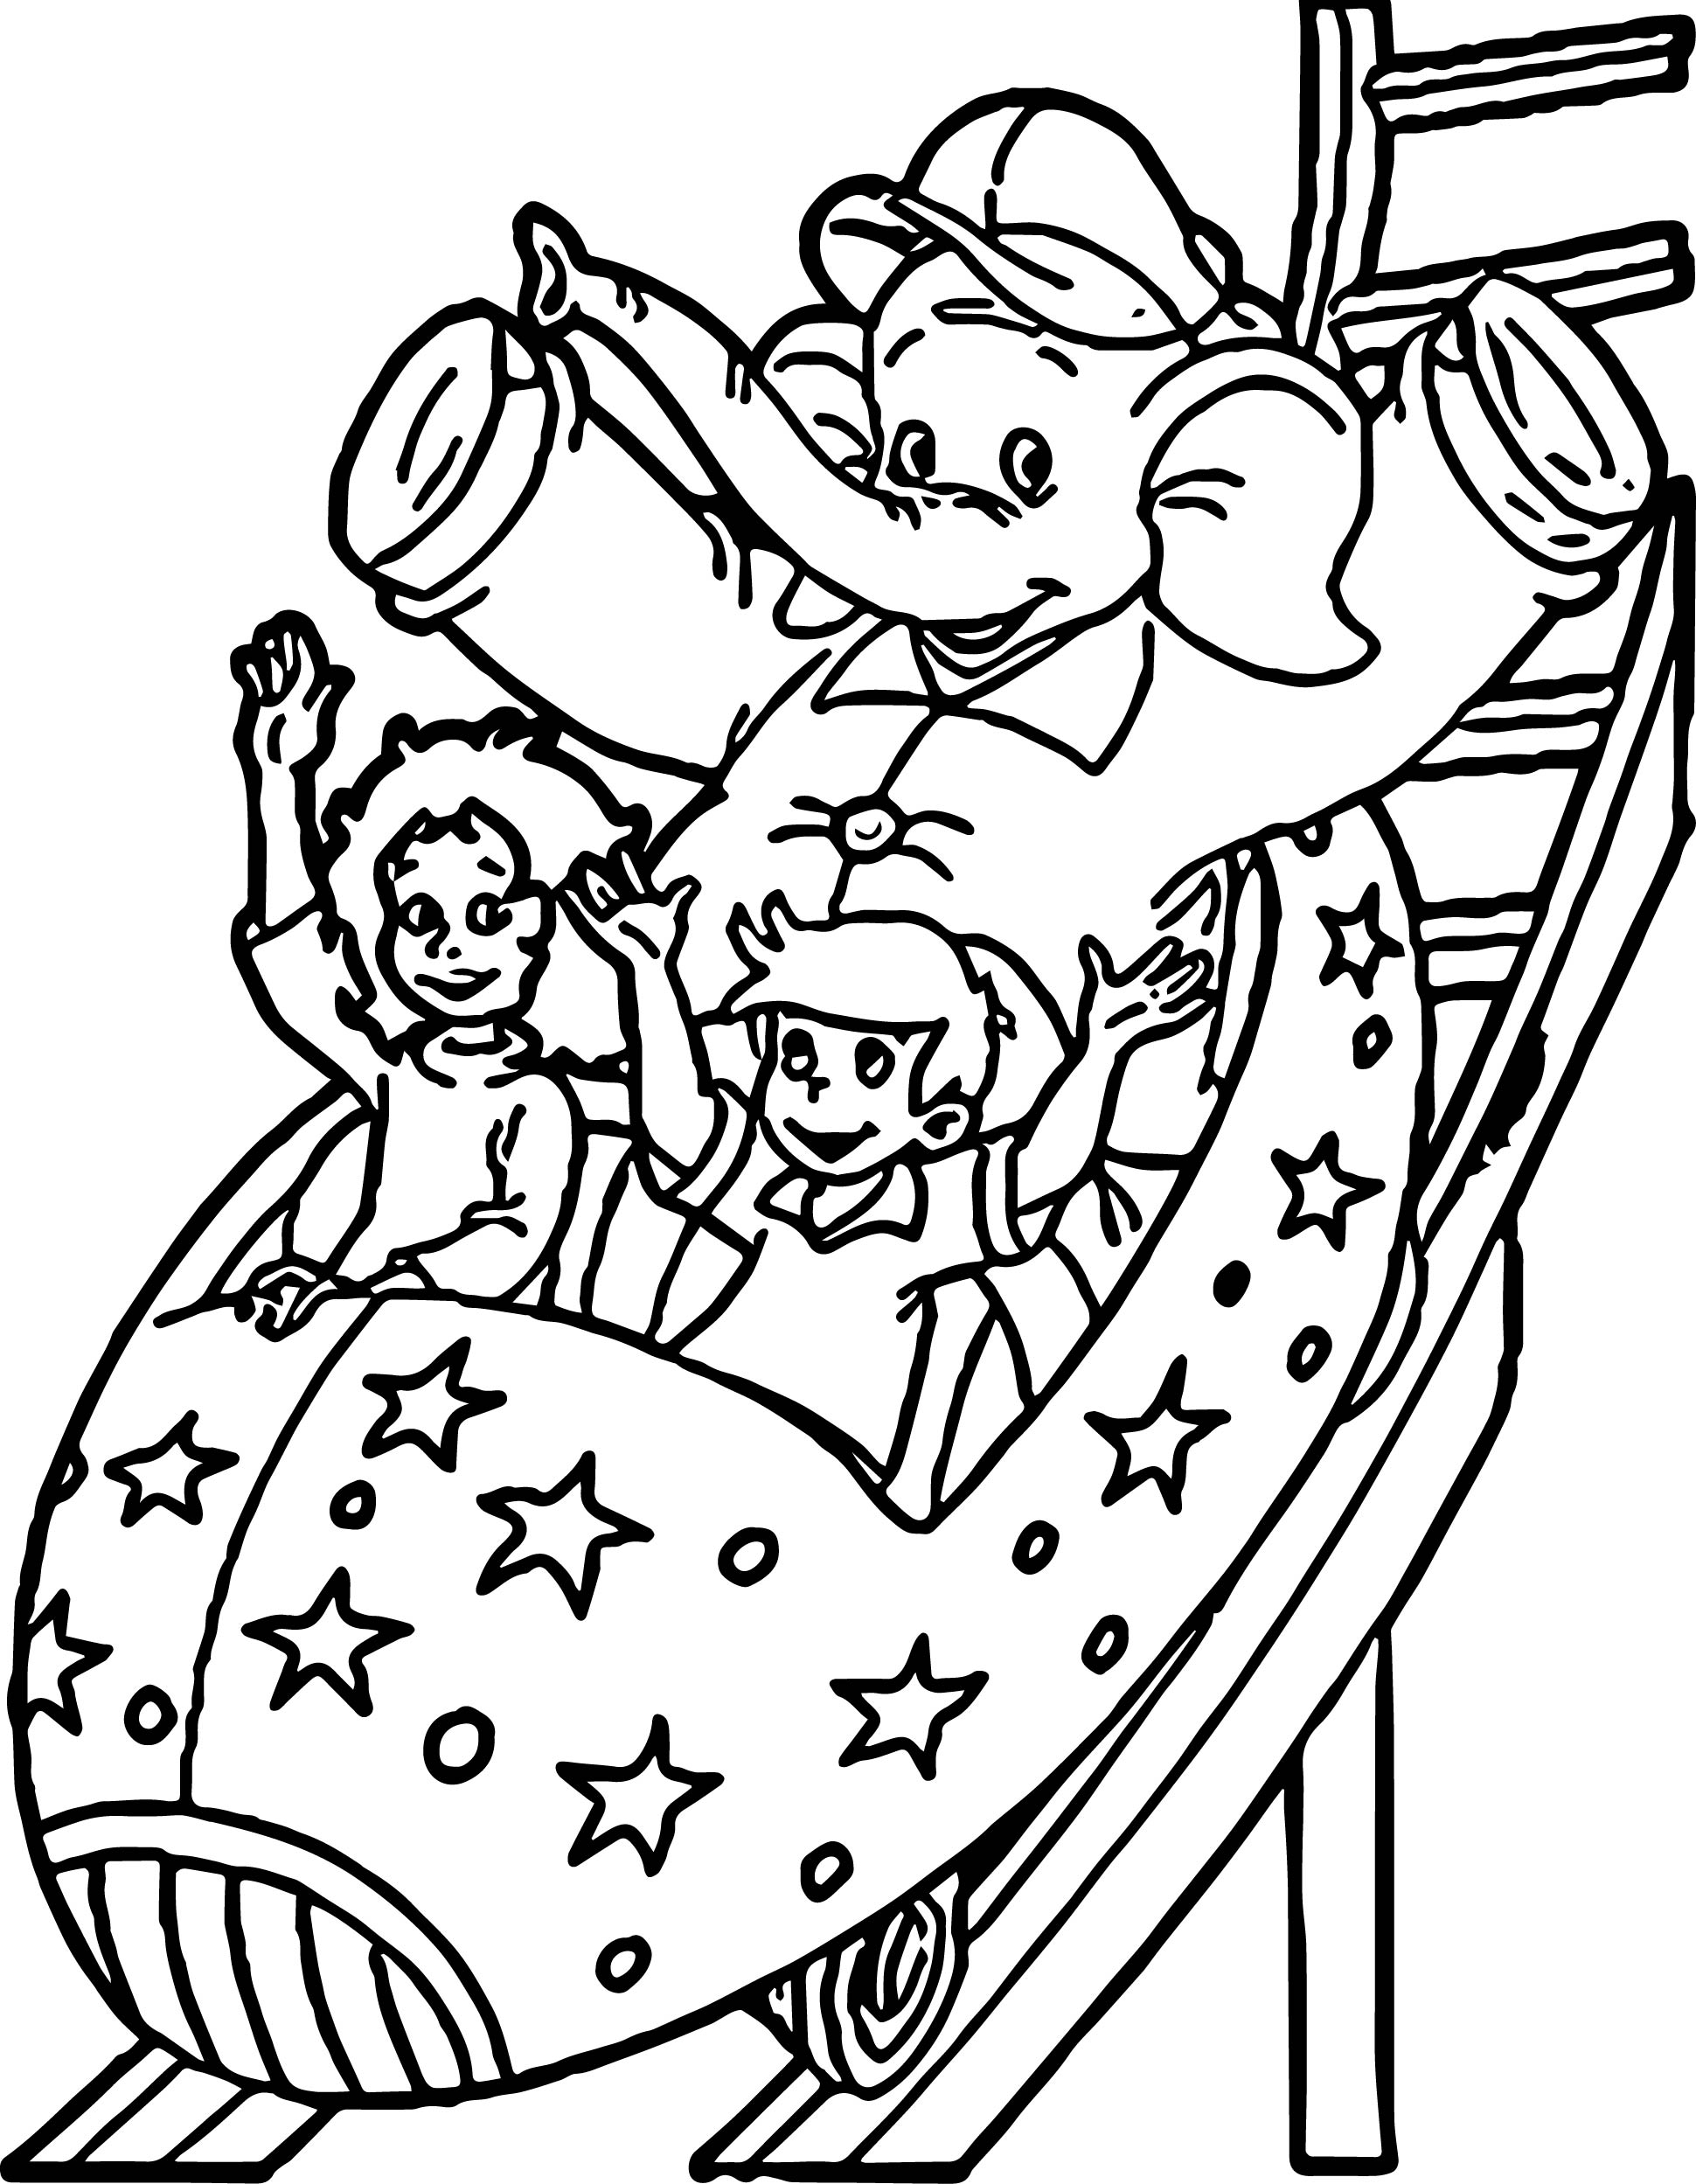 Elephant Rally Park Coloring Page